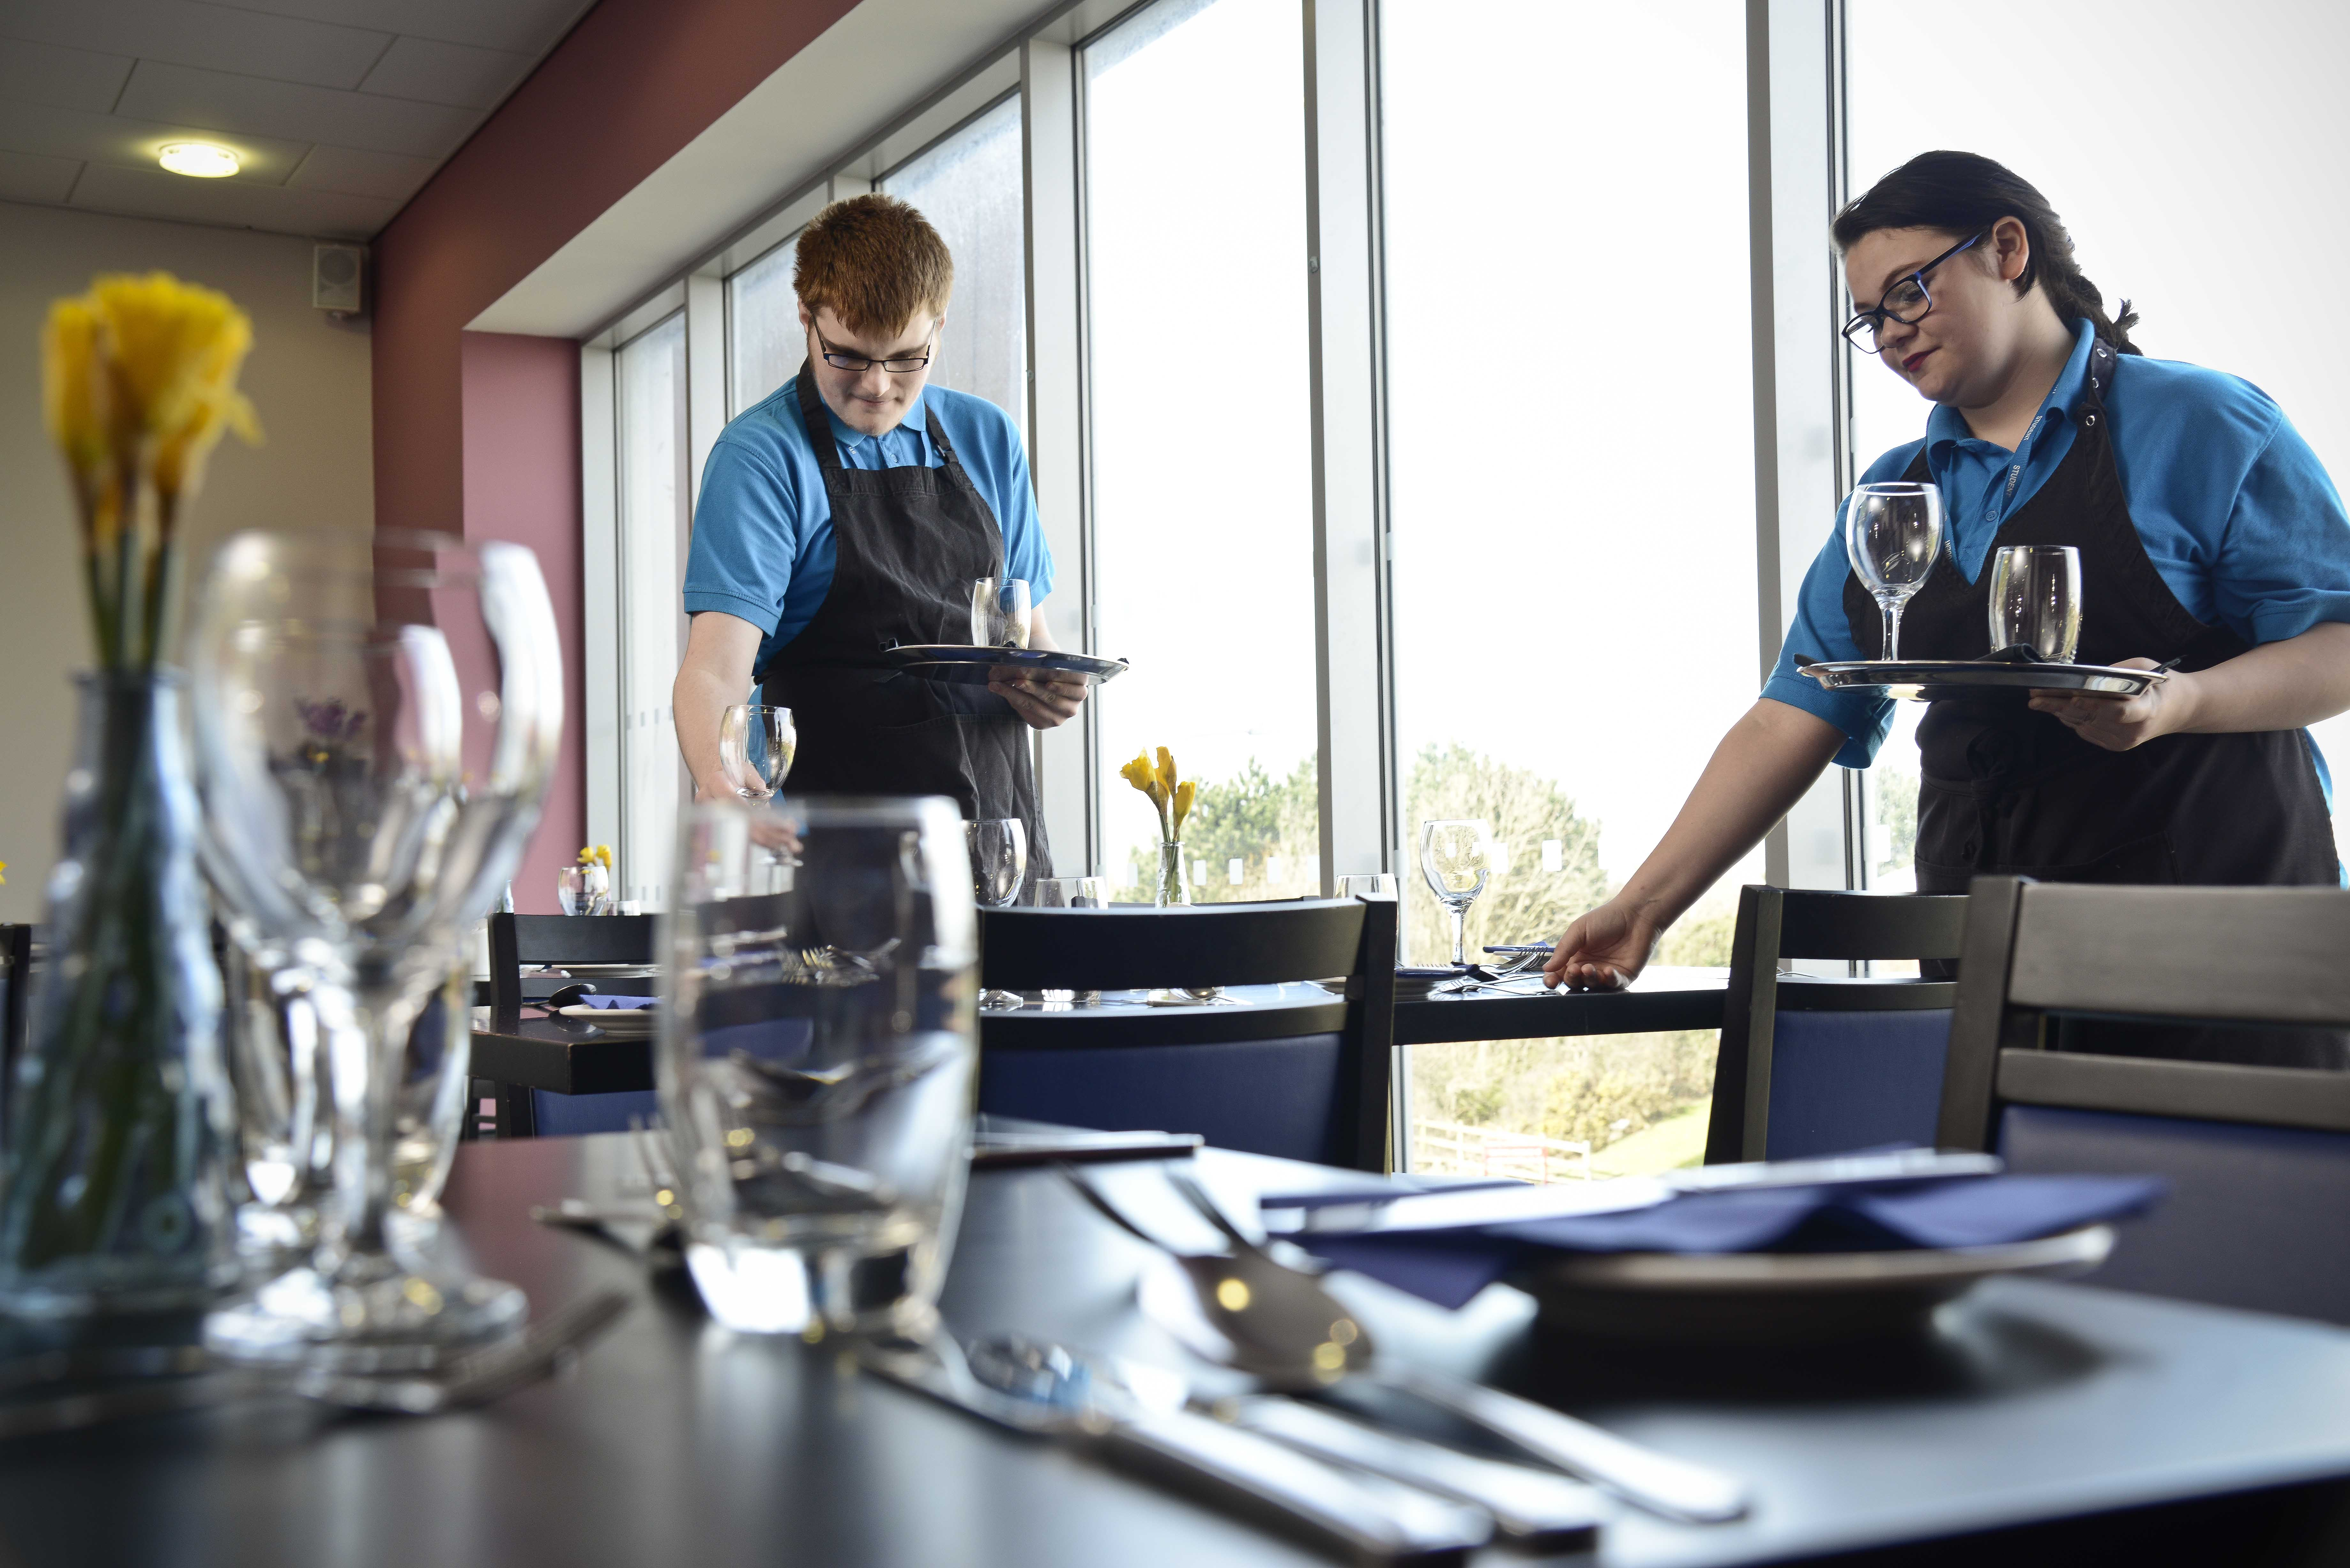 Apprenticeship in Catering & Hospitality